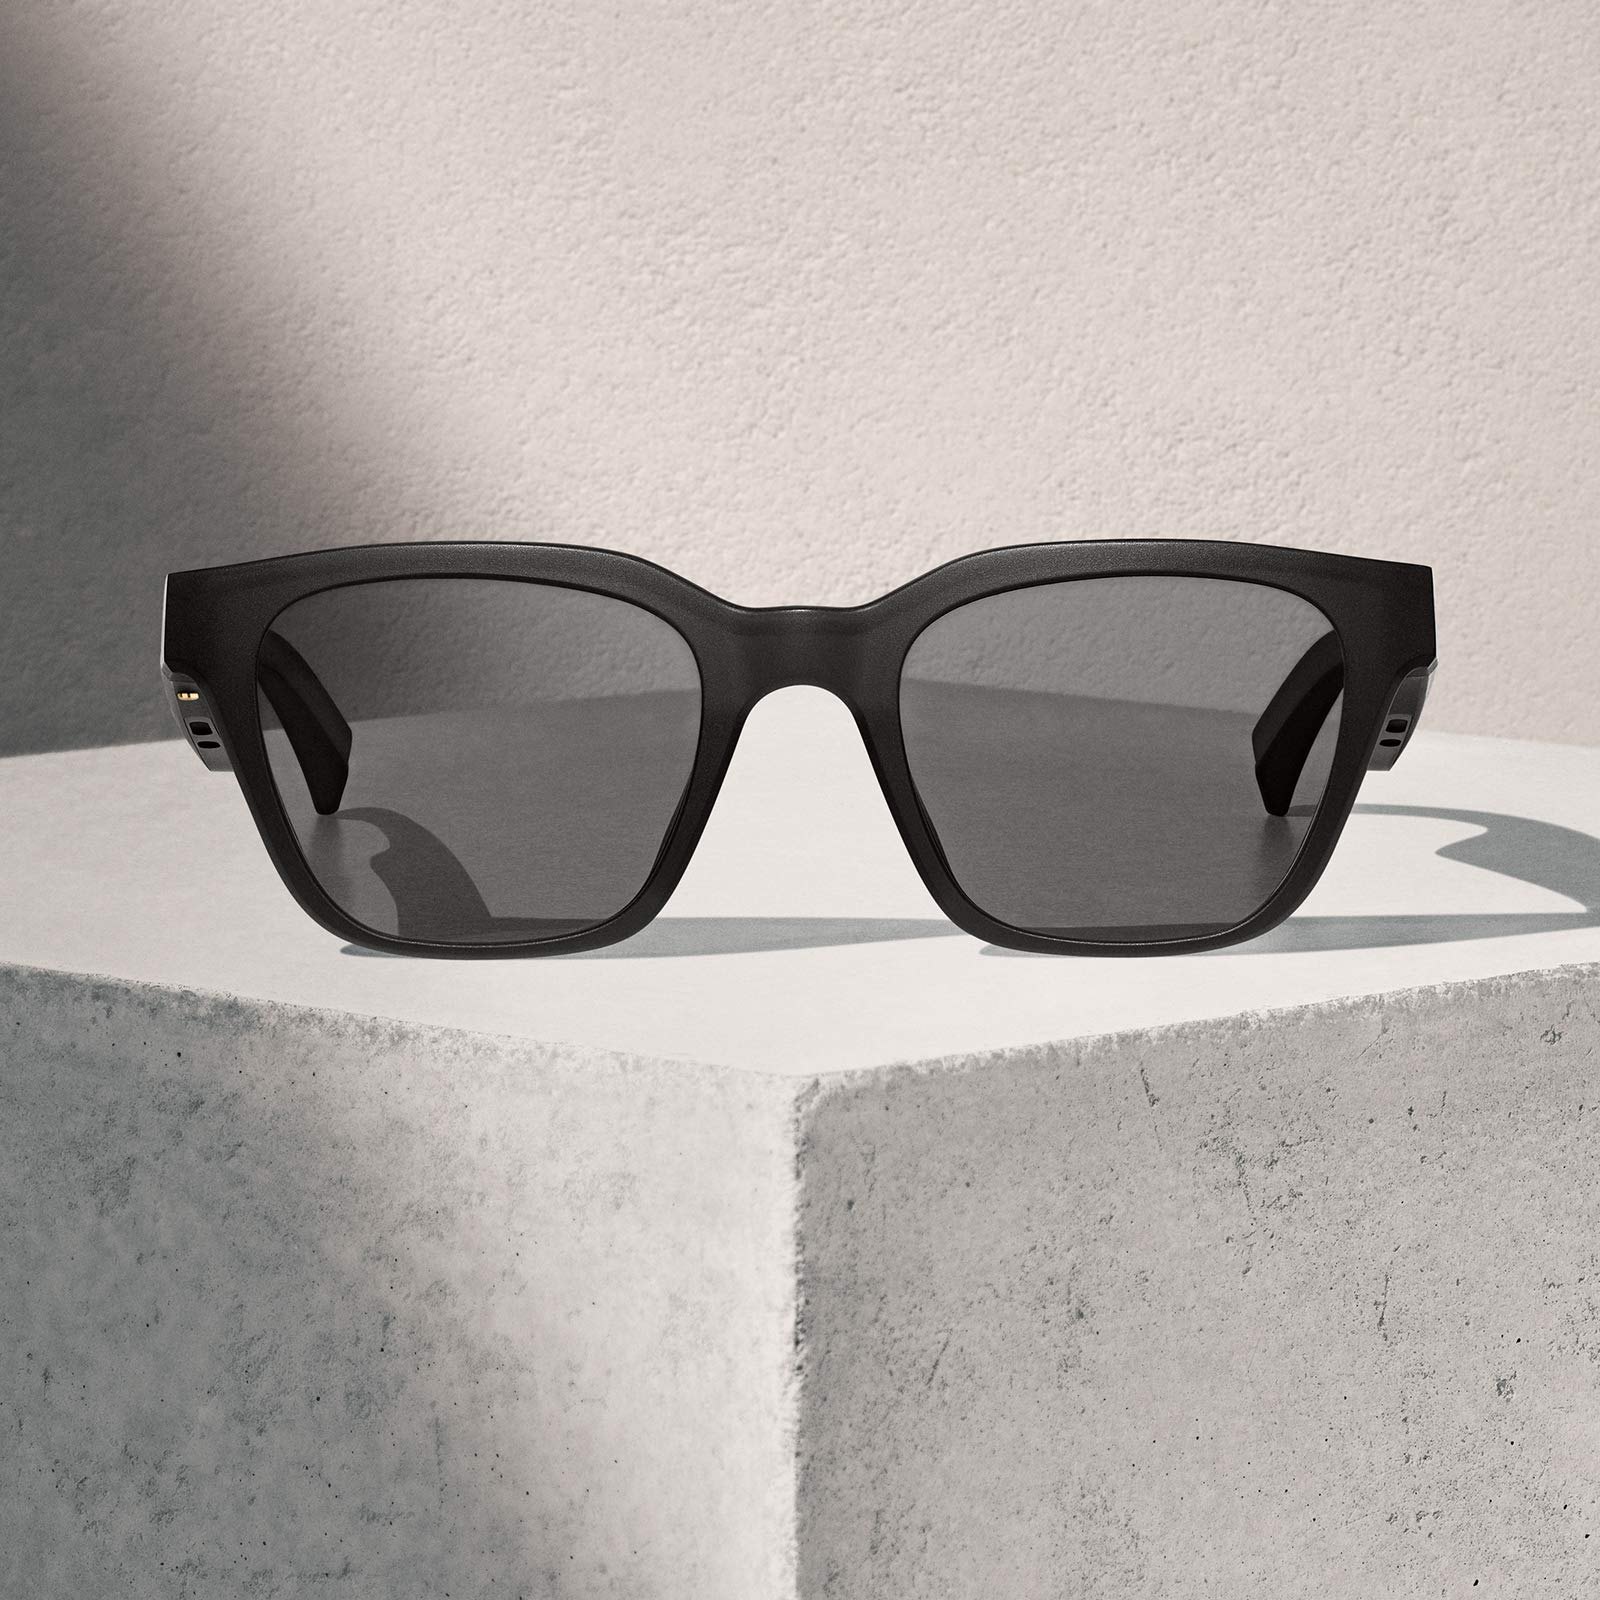 Bose Frames Audio Sunglasses, Alto, Black - with Bluetooth Connectivity by Bose (Image #6)